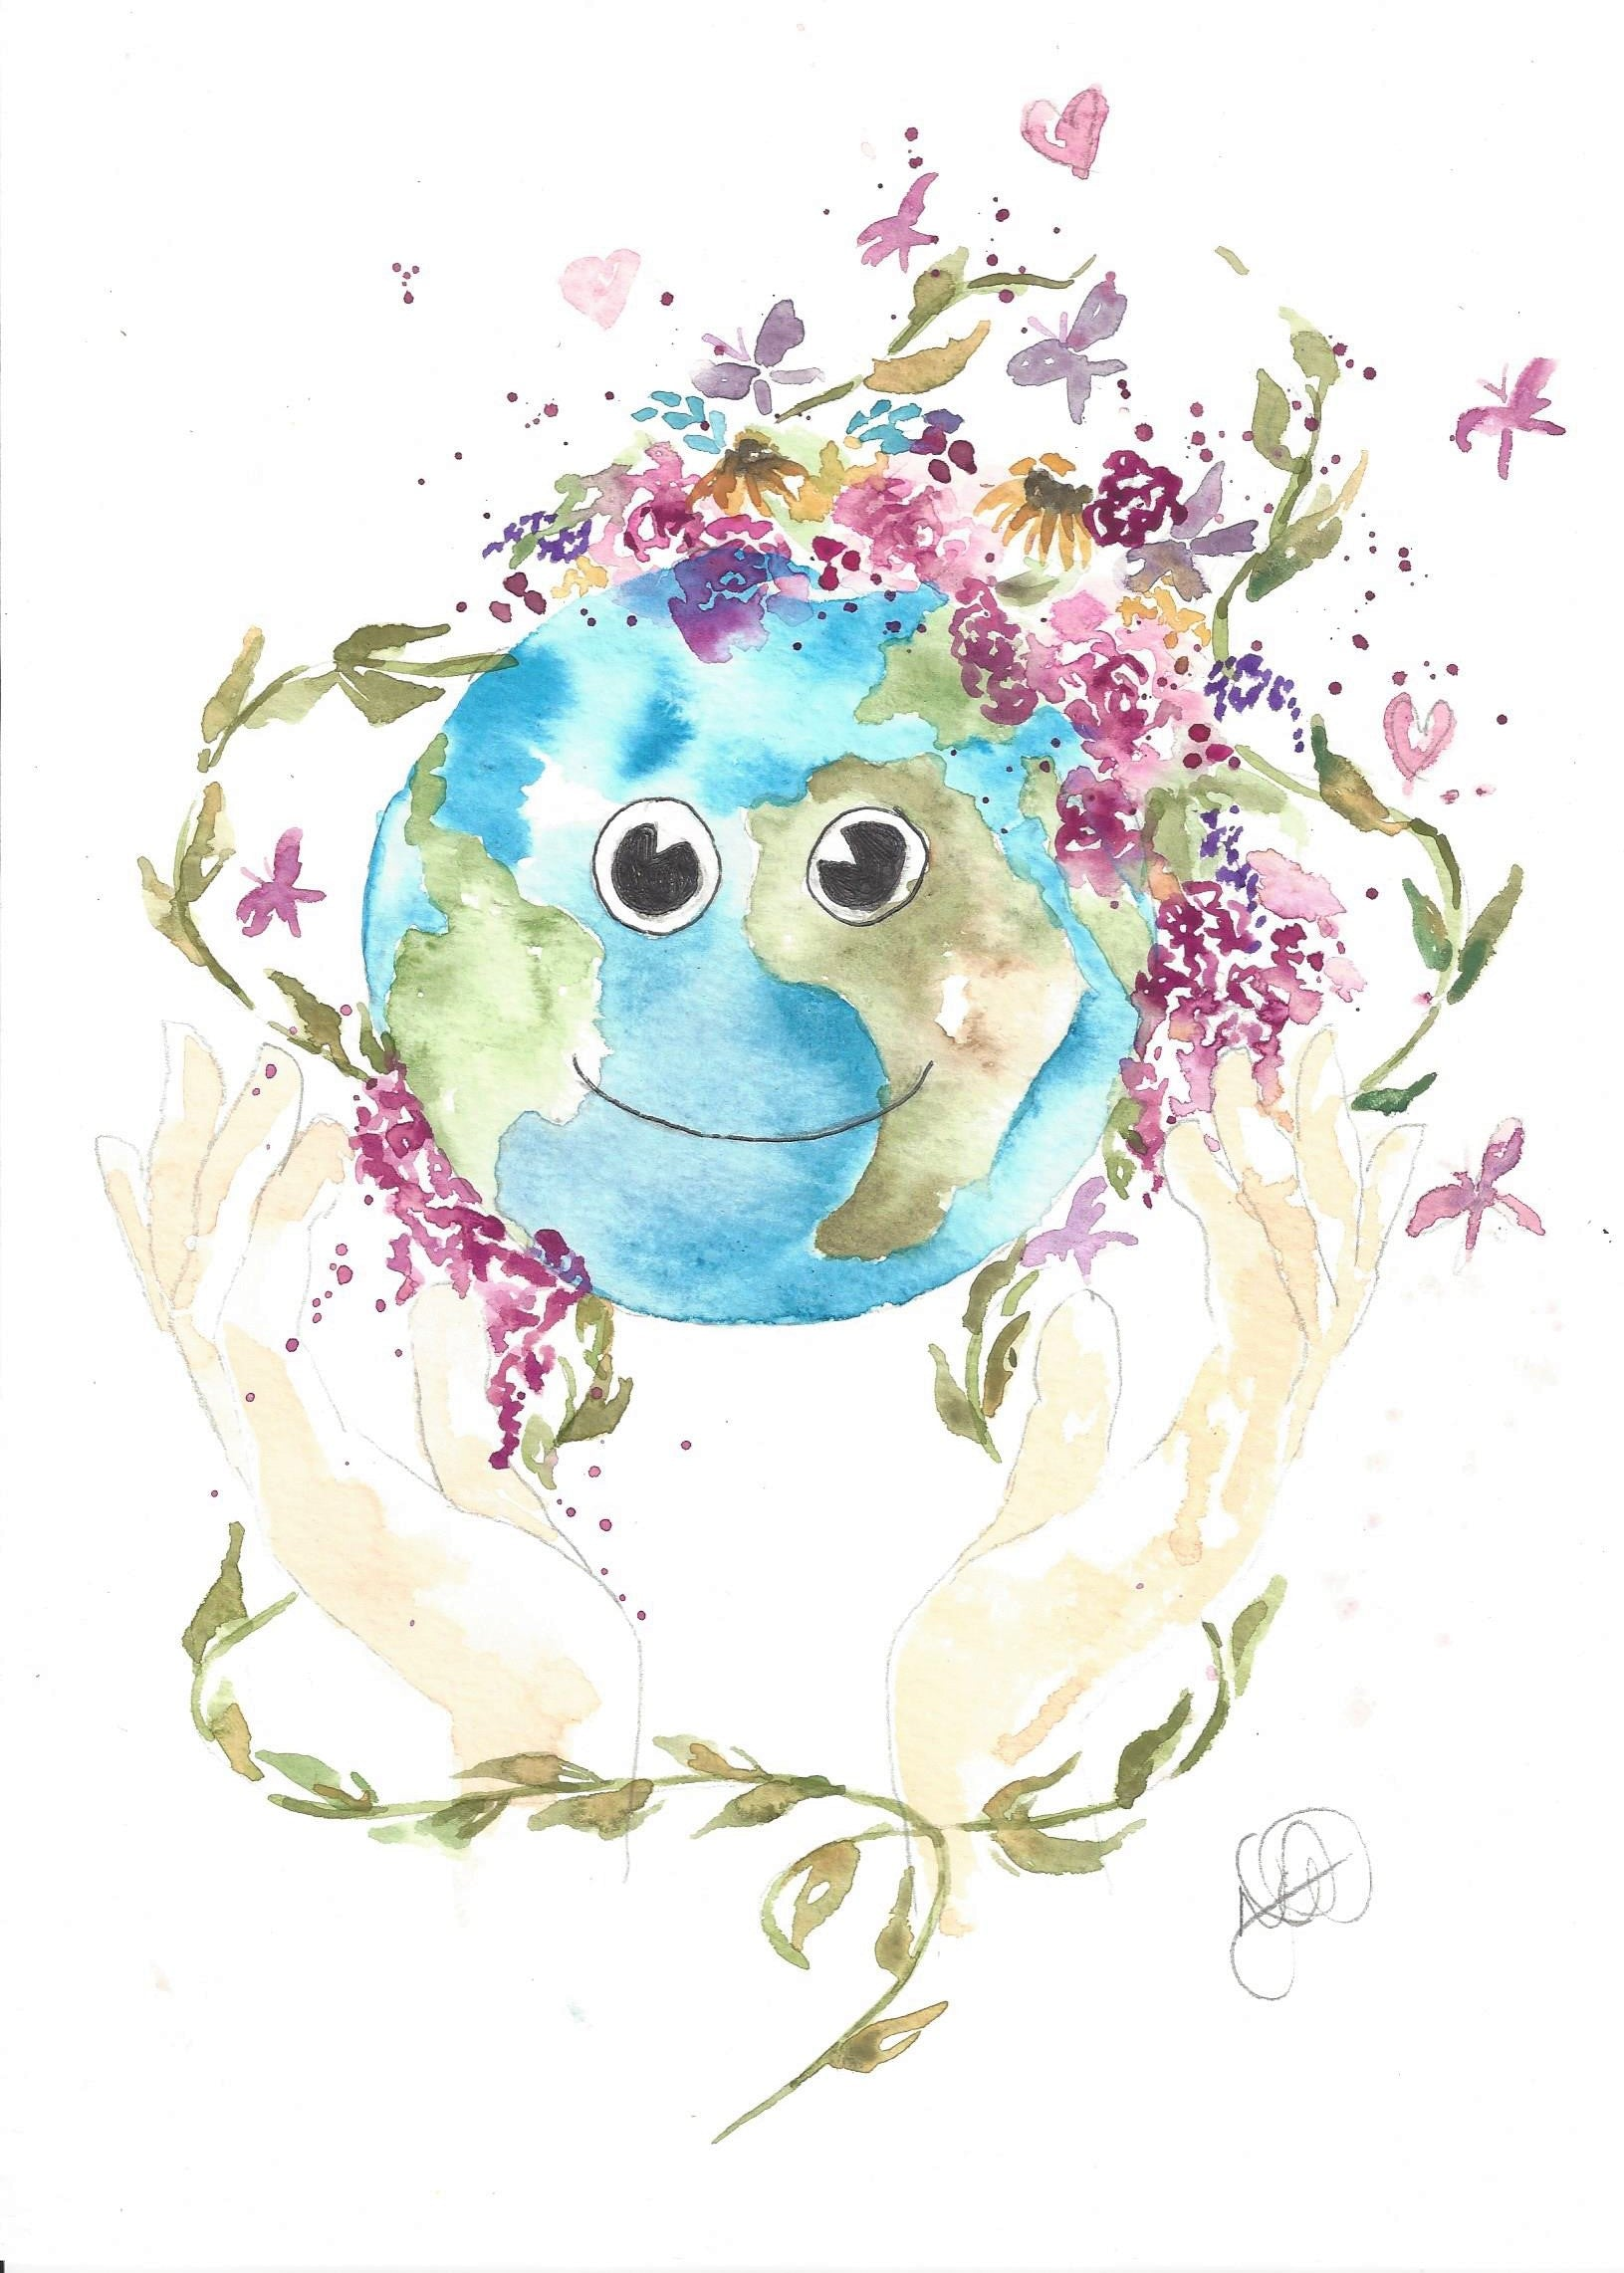 Watercolor Original Mother Earth